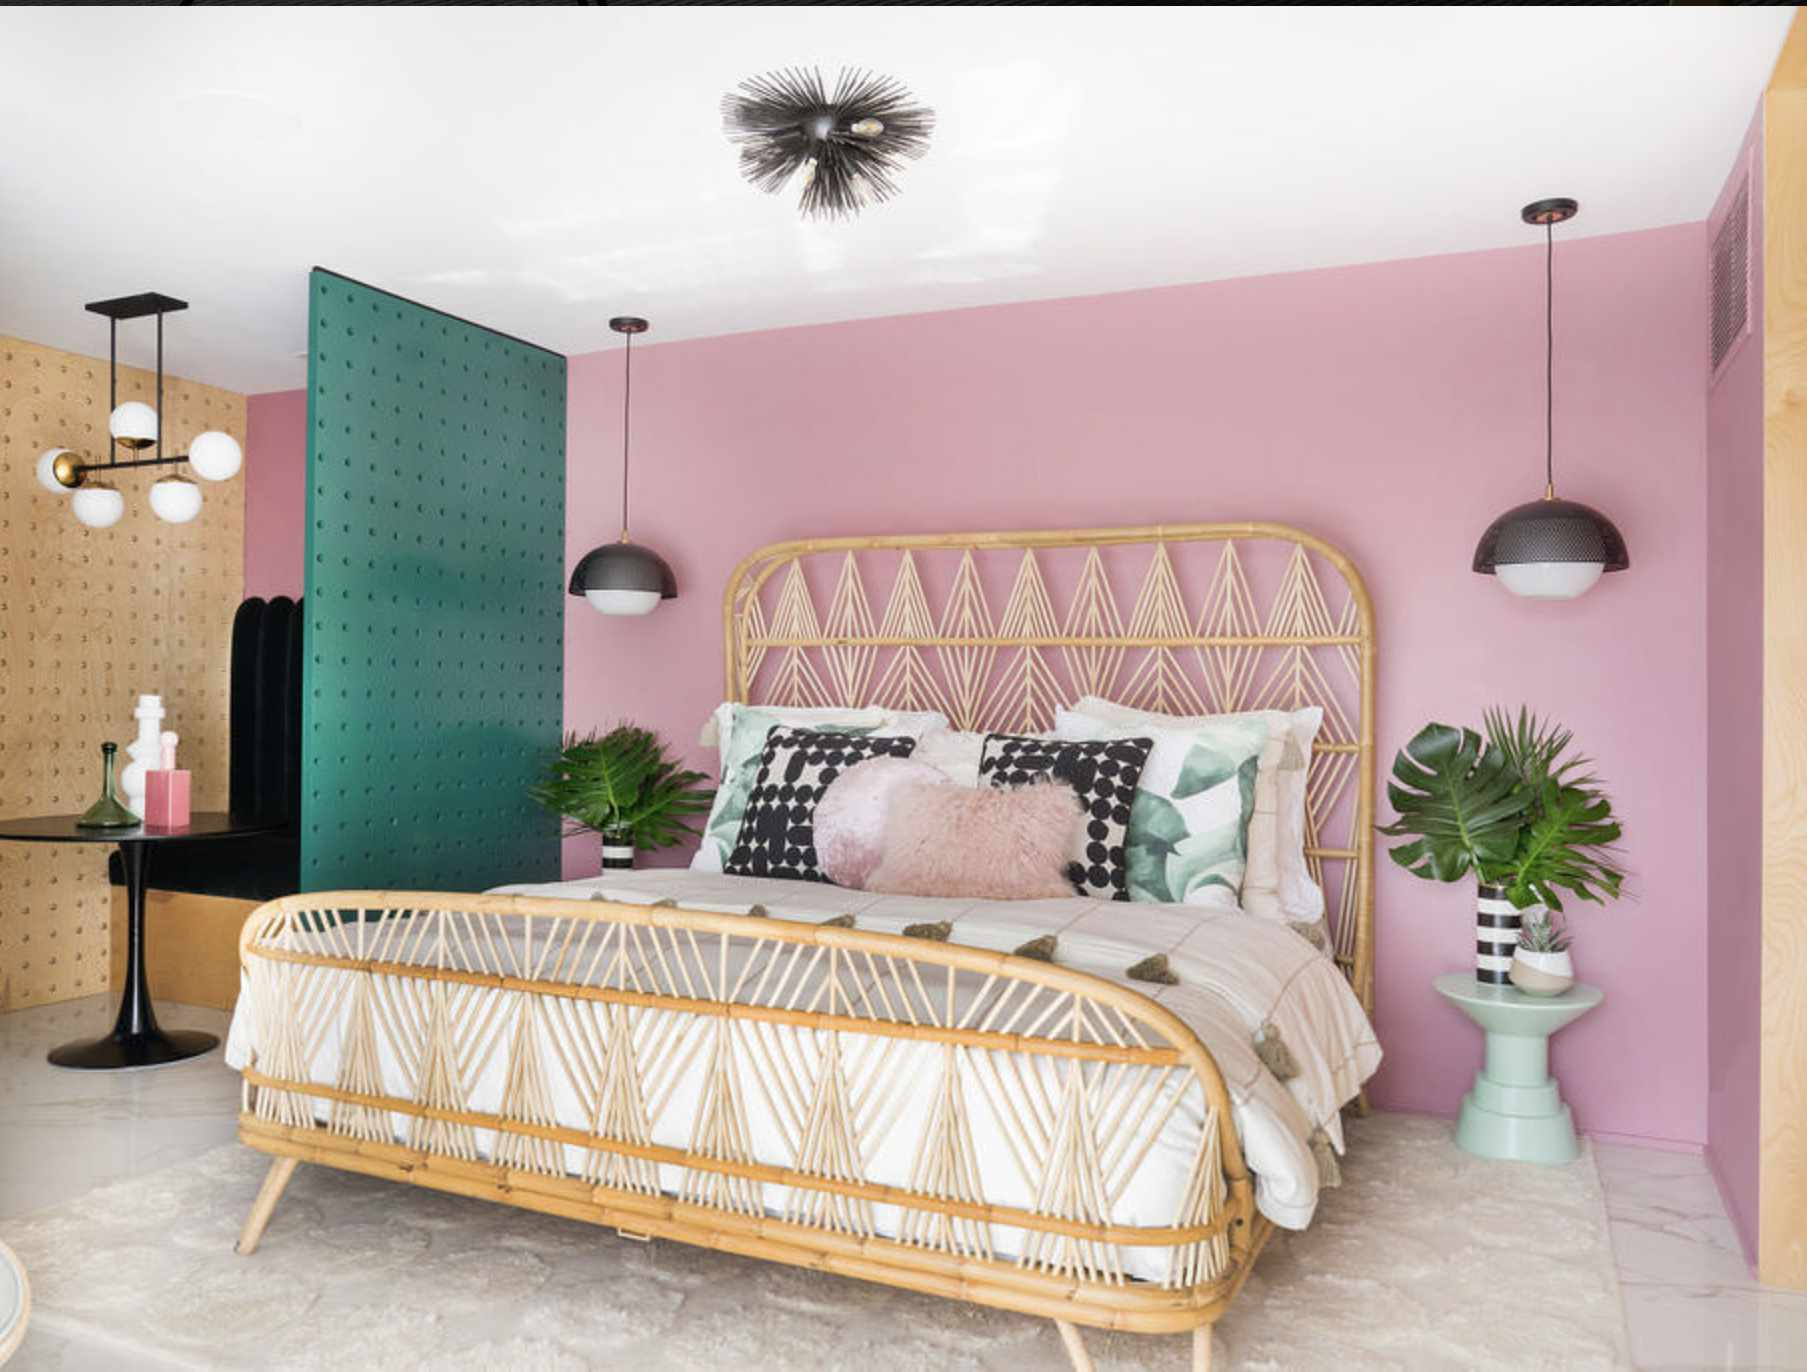 pink and teal bedroom with wicker bed frame